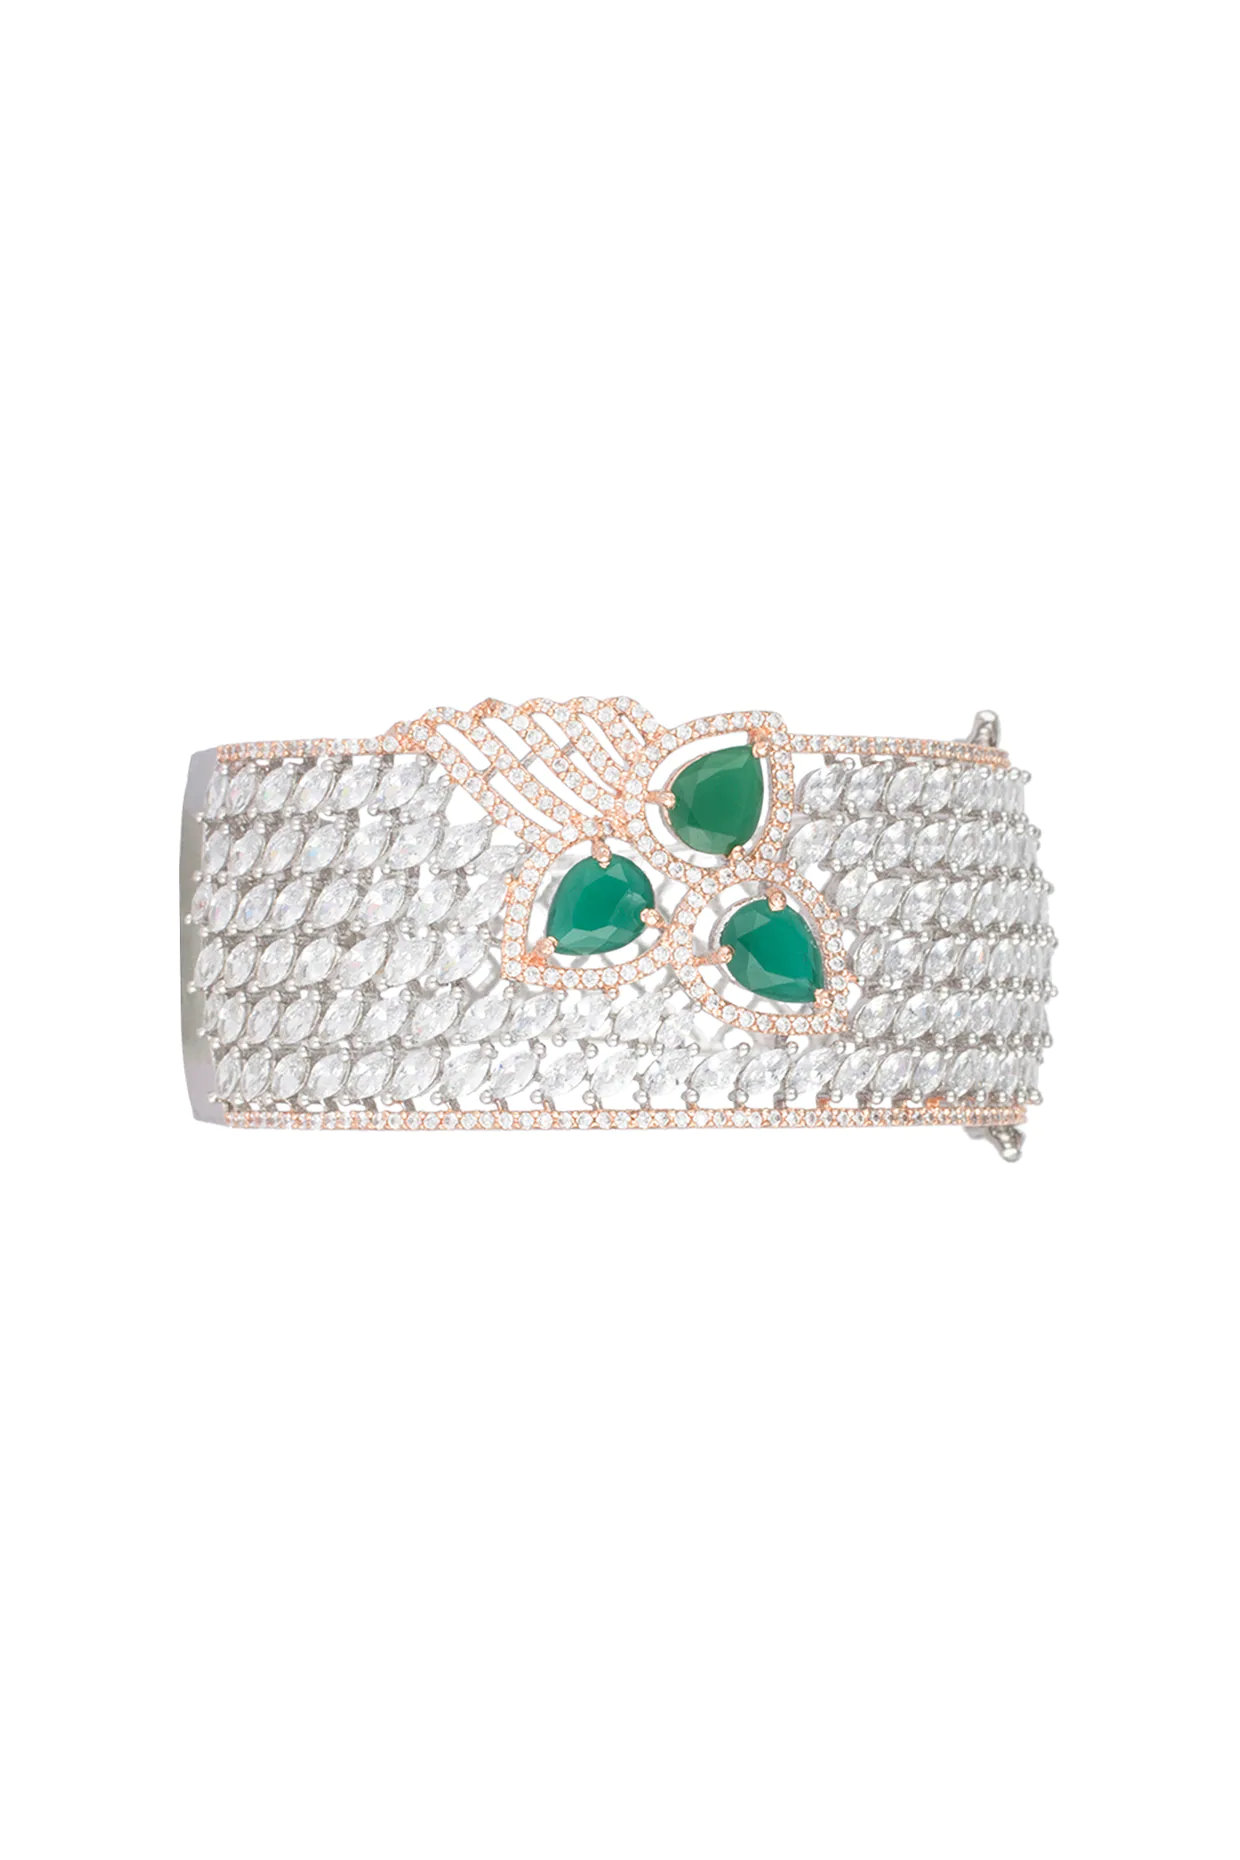 Silver plated faux diamond and emerald bracelet